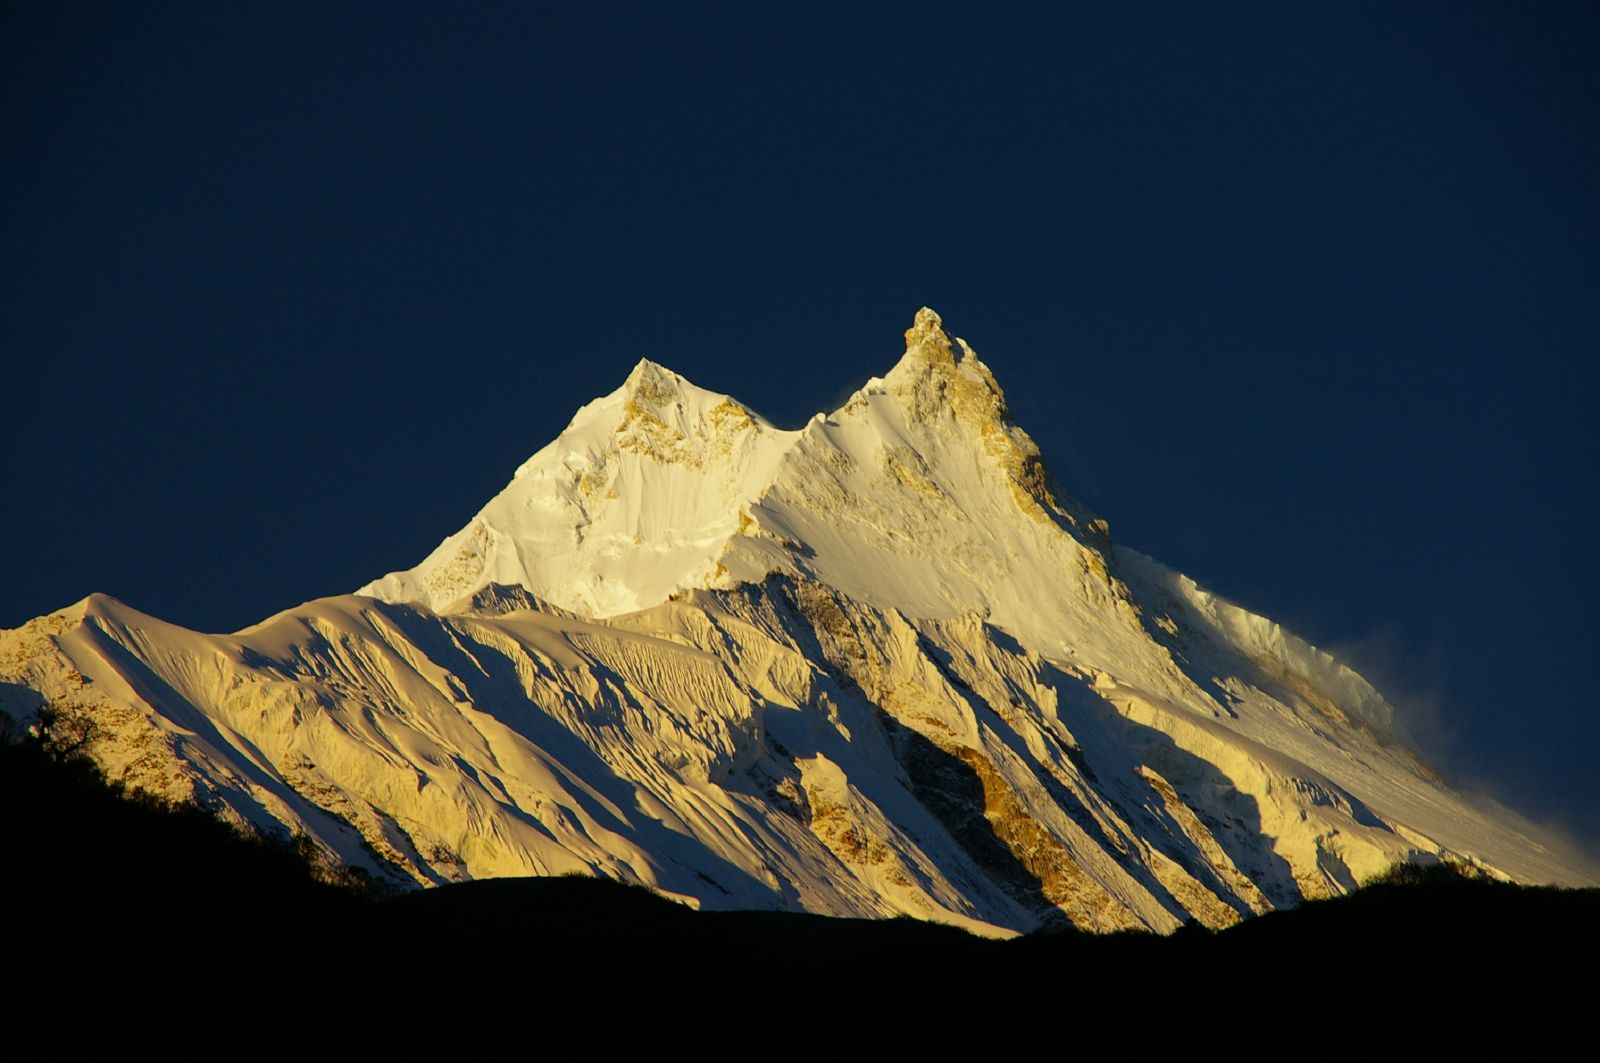 http://upload.wikimedia.org/wikipedia/commons/e/e0/Sunrise,_Manaslu.jpg